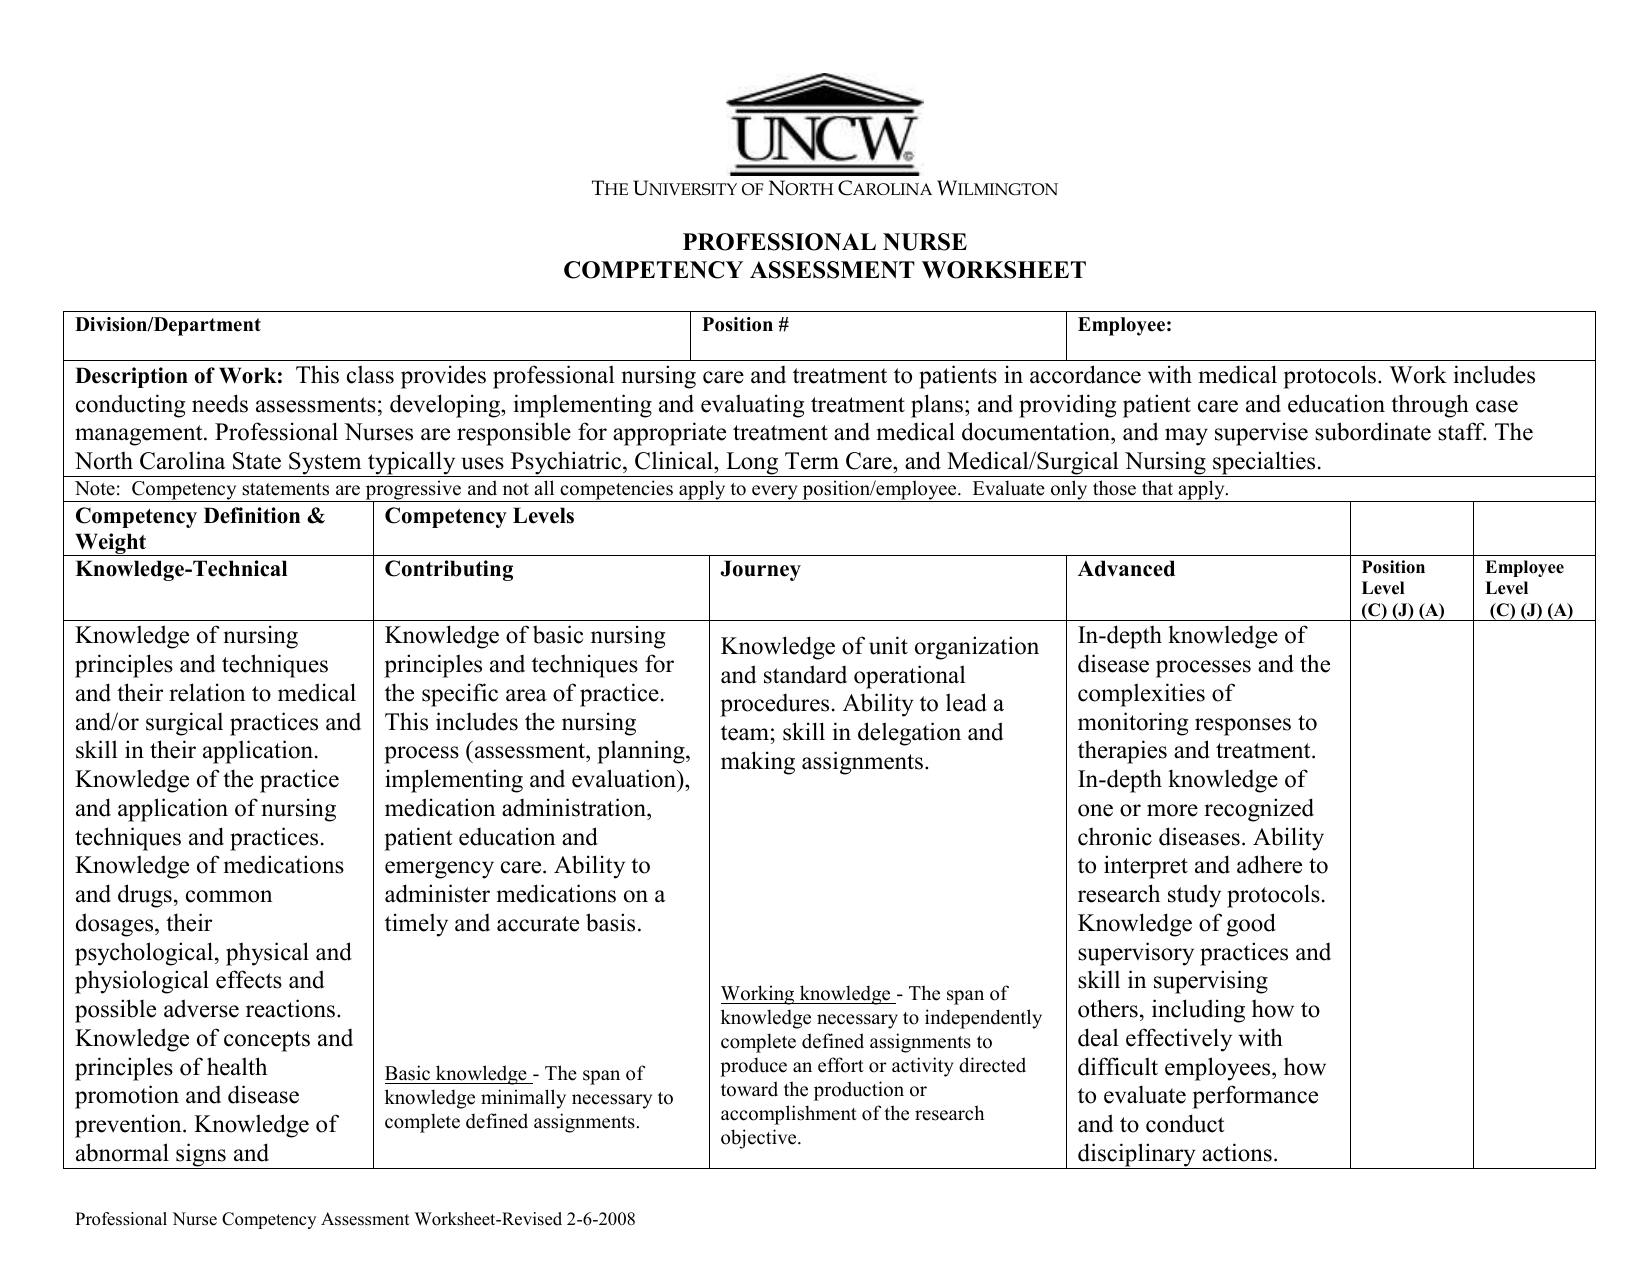 Professional Nurse Competency Assessment Worksheet